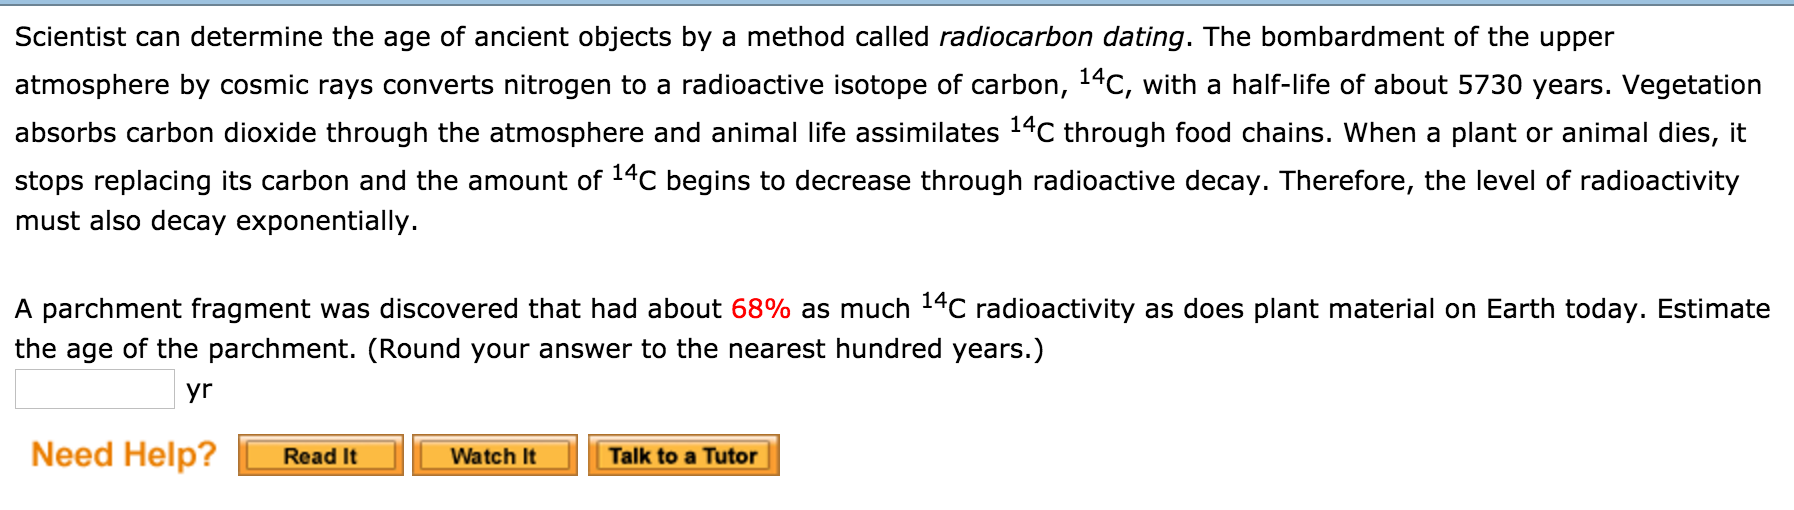 radiocarbon dating radioactive isotopes